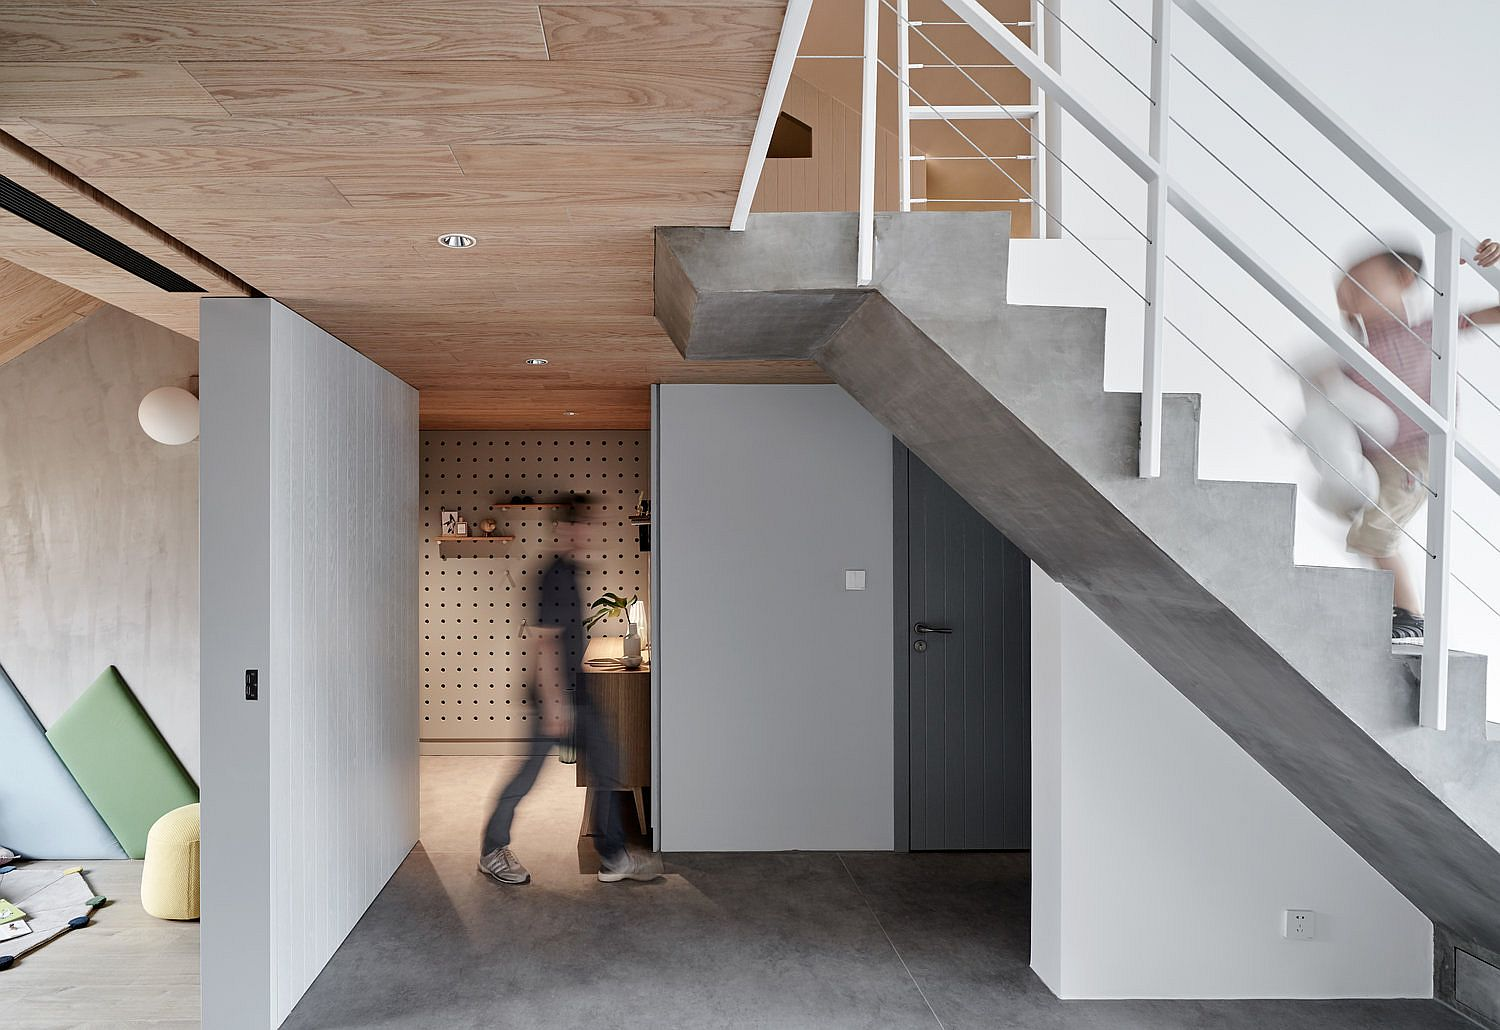 Staircase and floor brings concrete charm to the interior